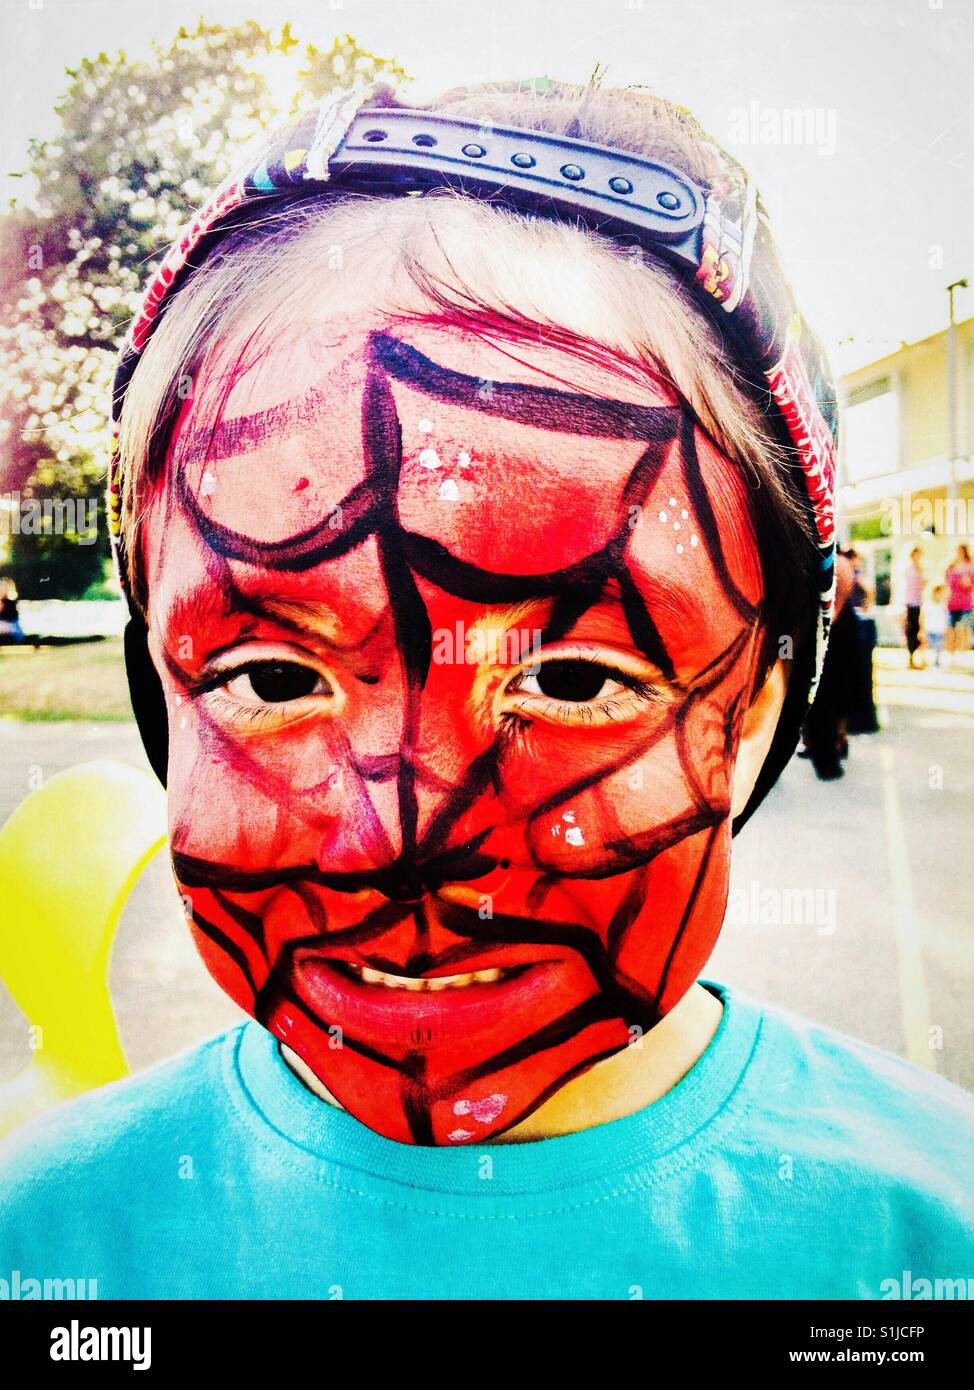 Portrait of a young boy wearing Spider-Man face paint. - Stock Image